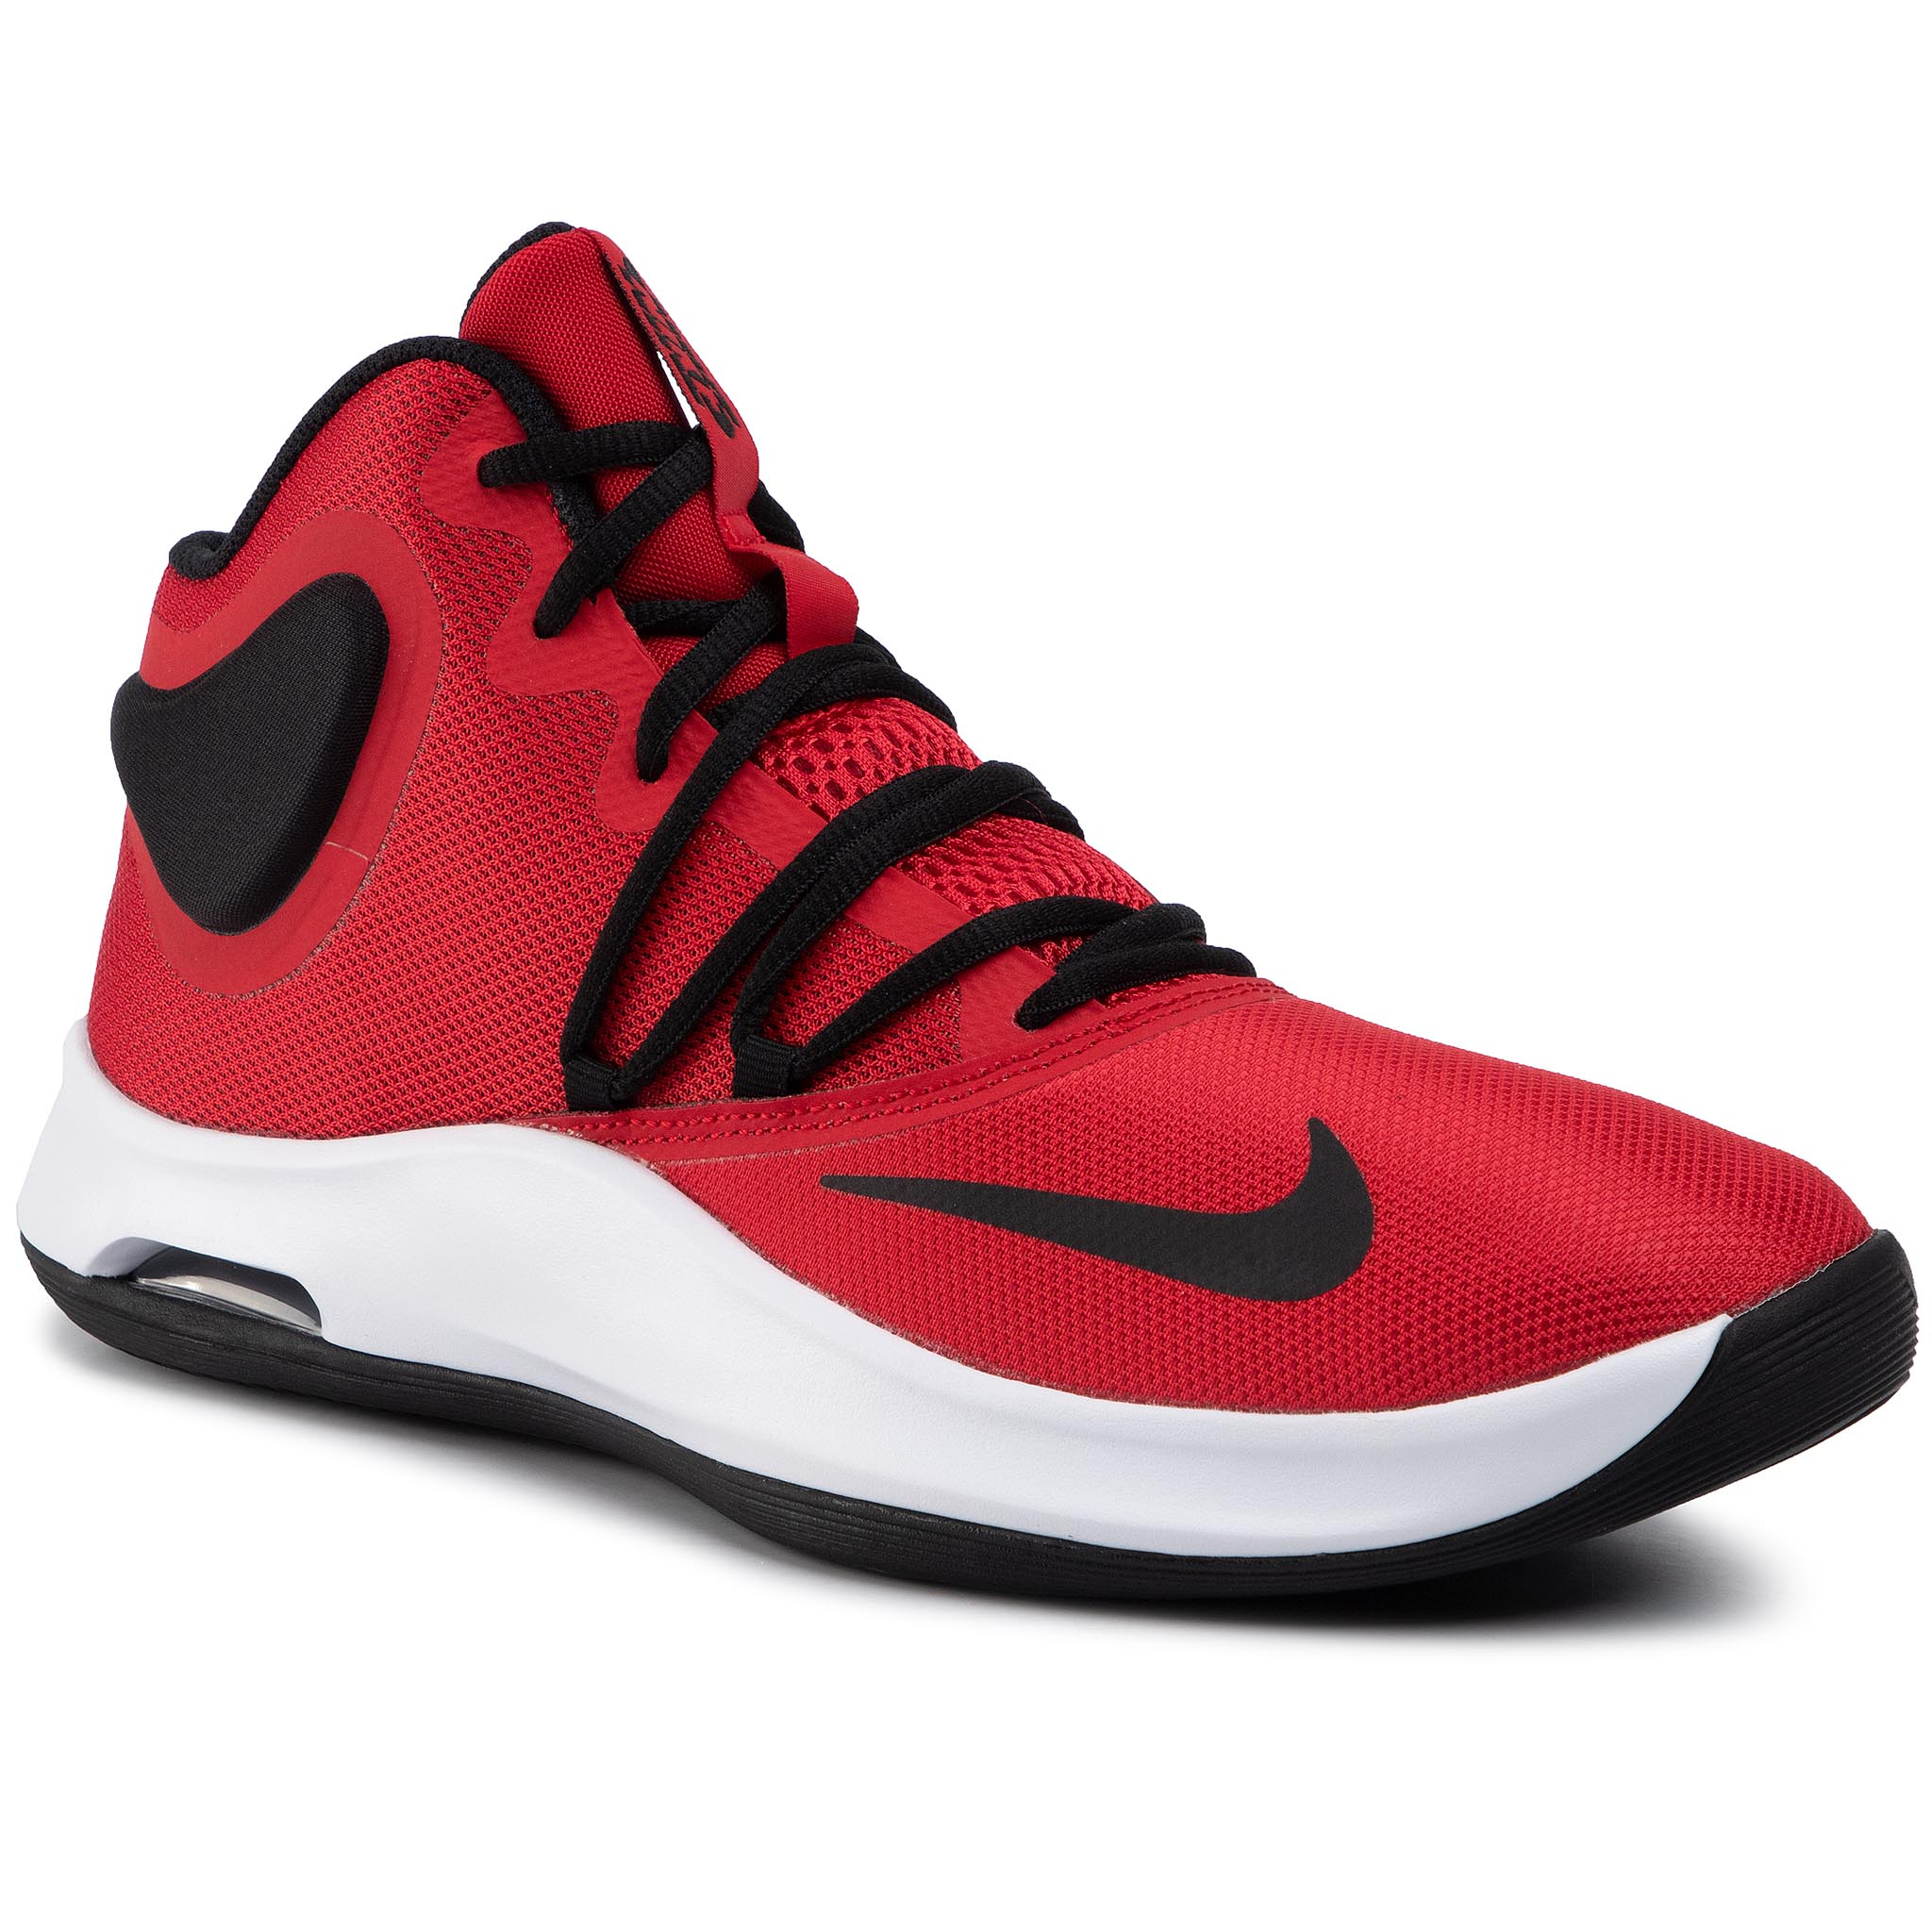 Pantofi Nike - Air Versitile Iv At1199 600 University Red/Black/White imagine epantofi.ro 2021